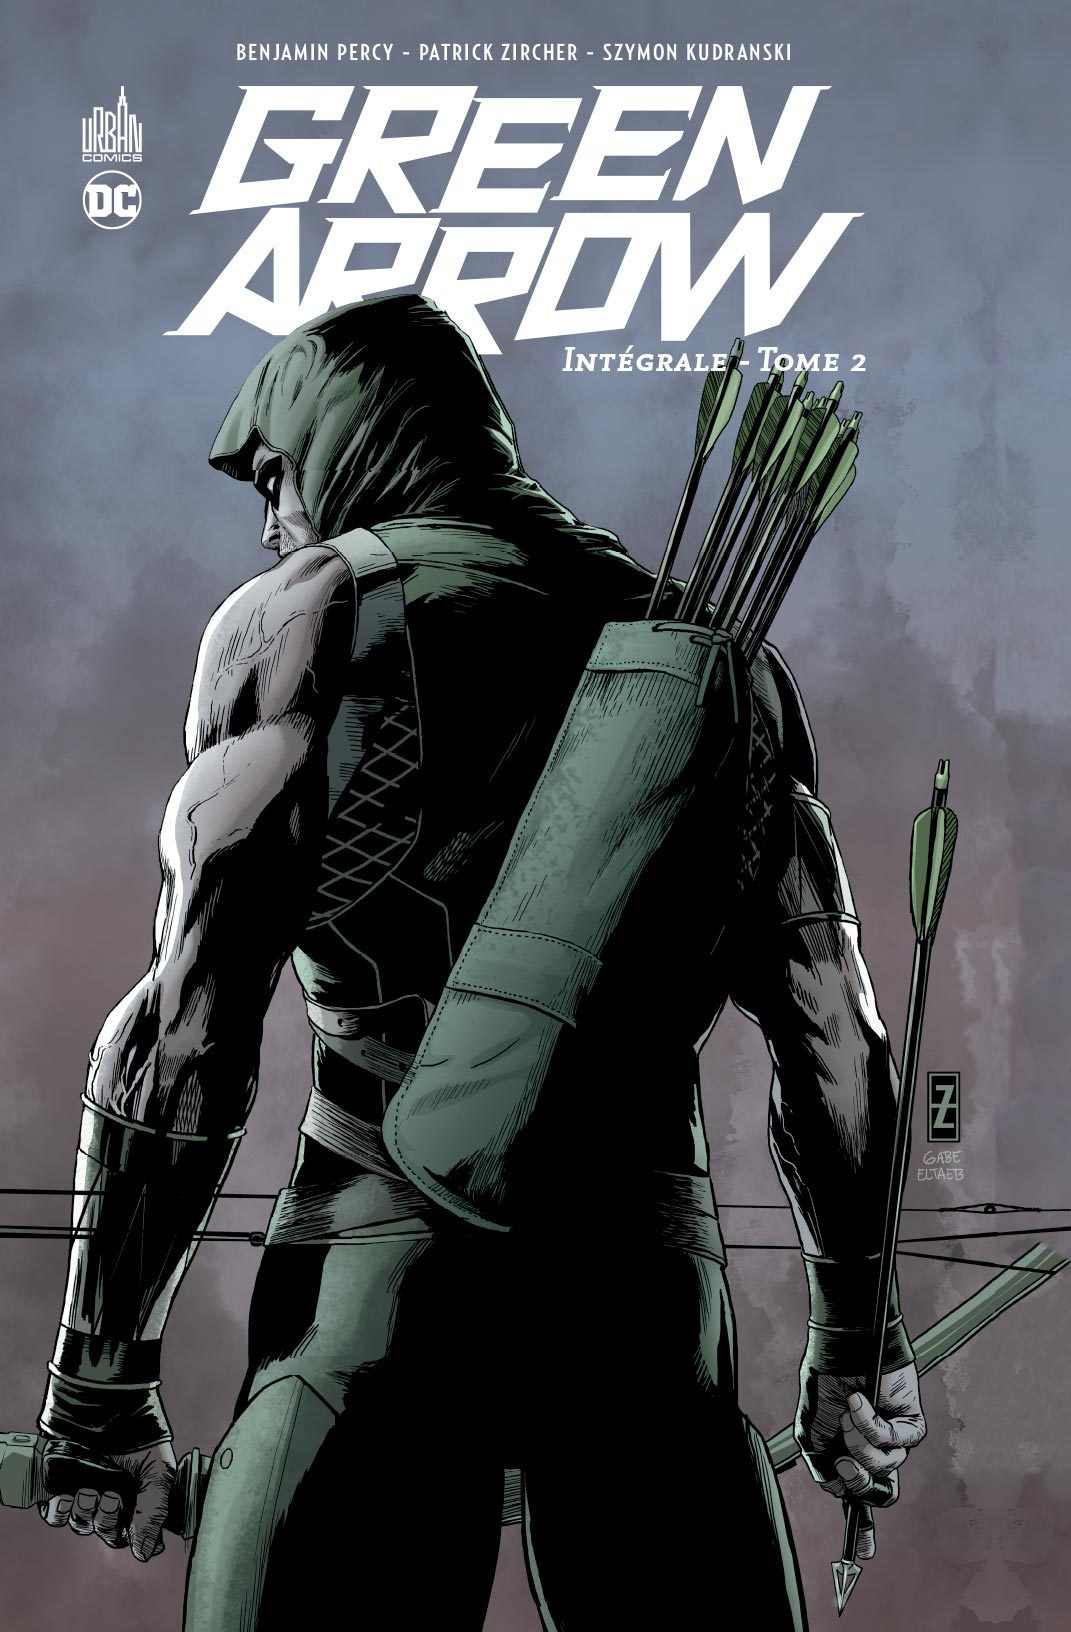 DC RENAISSANCE - GREEN ARROW INTEGRALE TOME 2